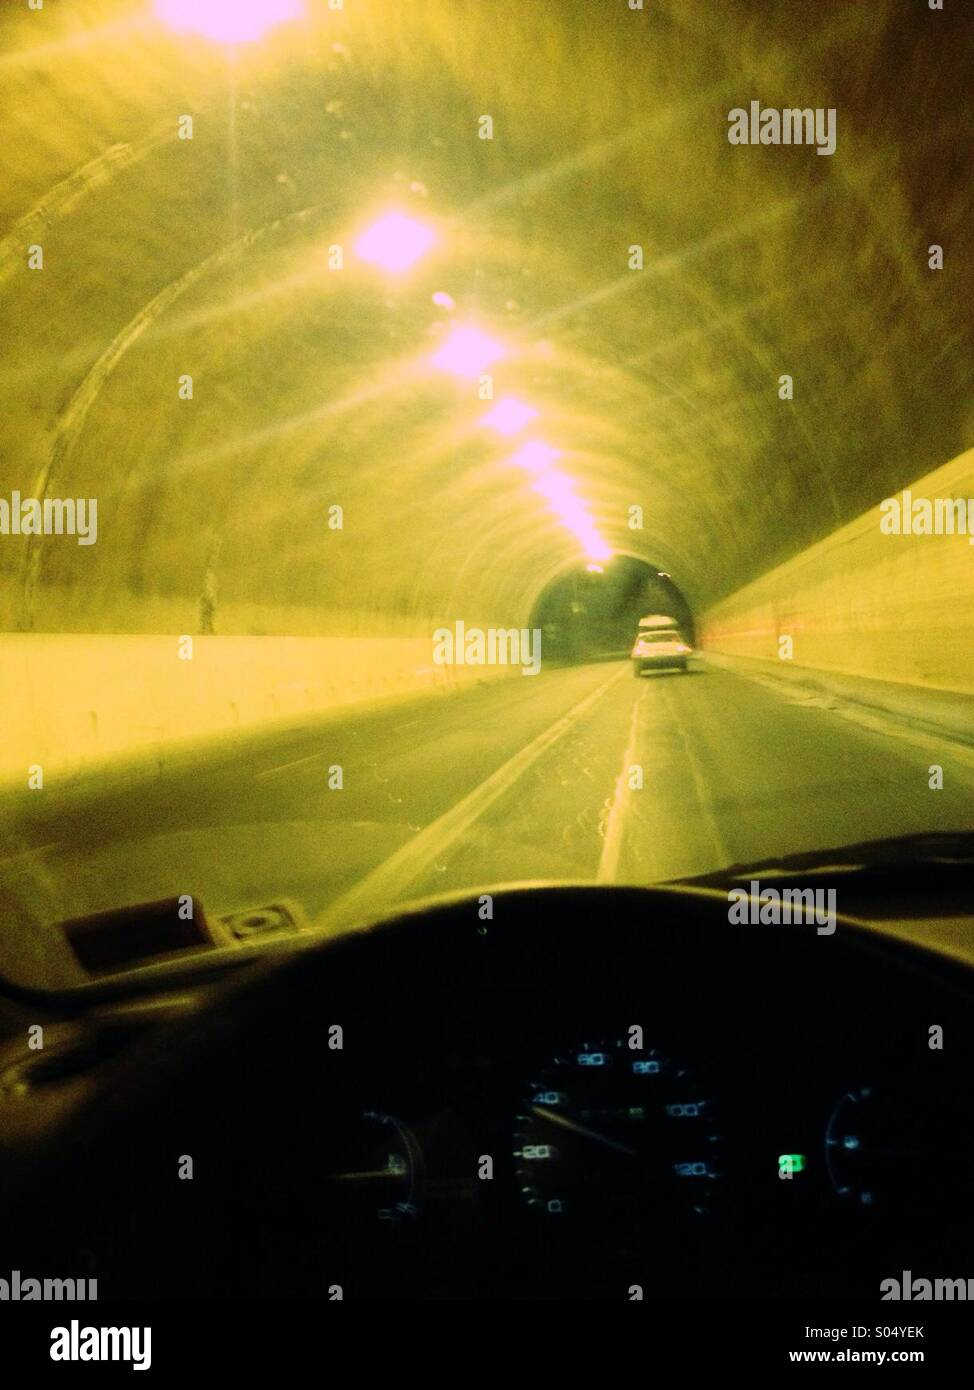 Driver's eye view of car going through a long tunnel at night. - Stock Image